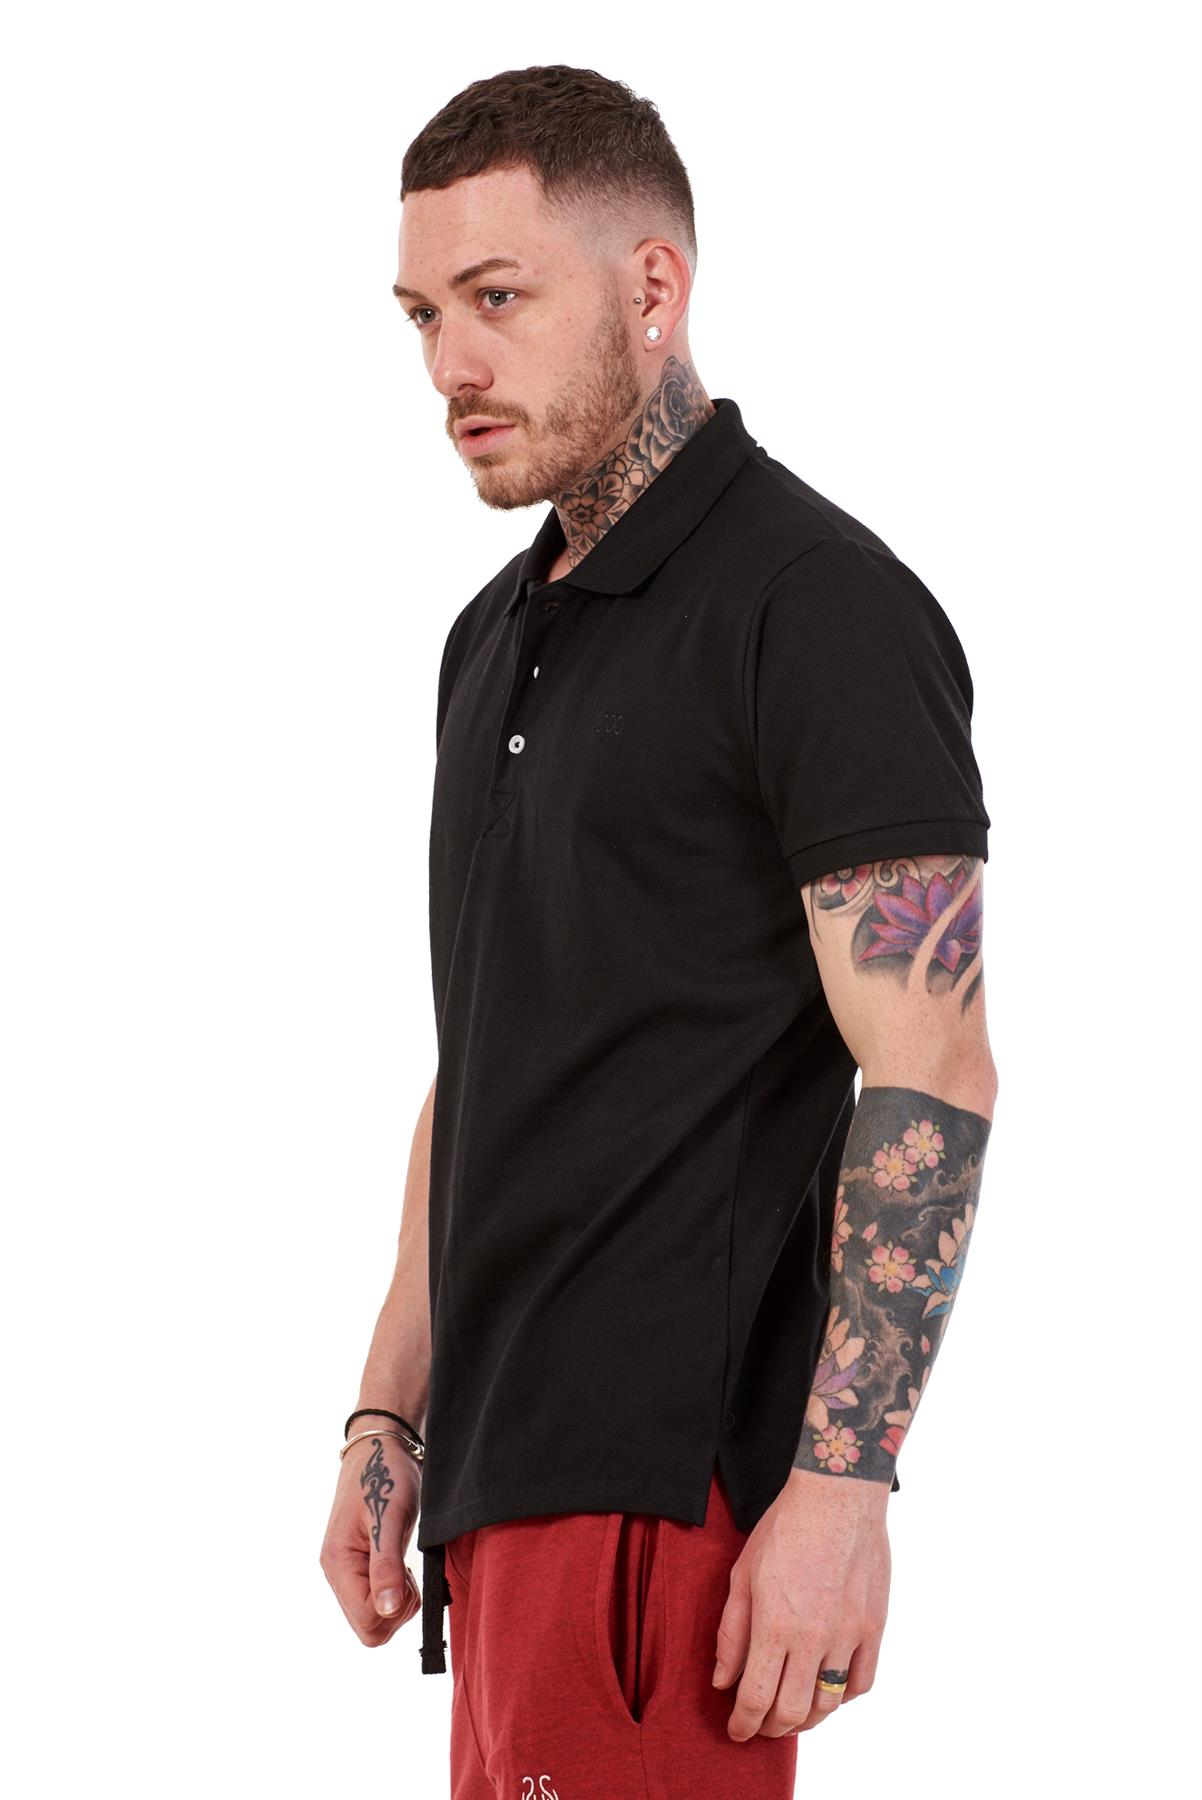 Mens-Plain-Solid-Polo-Cotton-T-Shirts-Regular-fit-Casual-Formal-Shirt-Top-M-XXL thumbnail 4